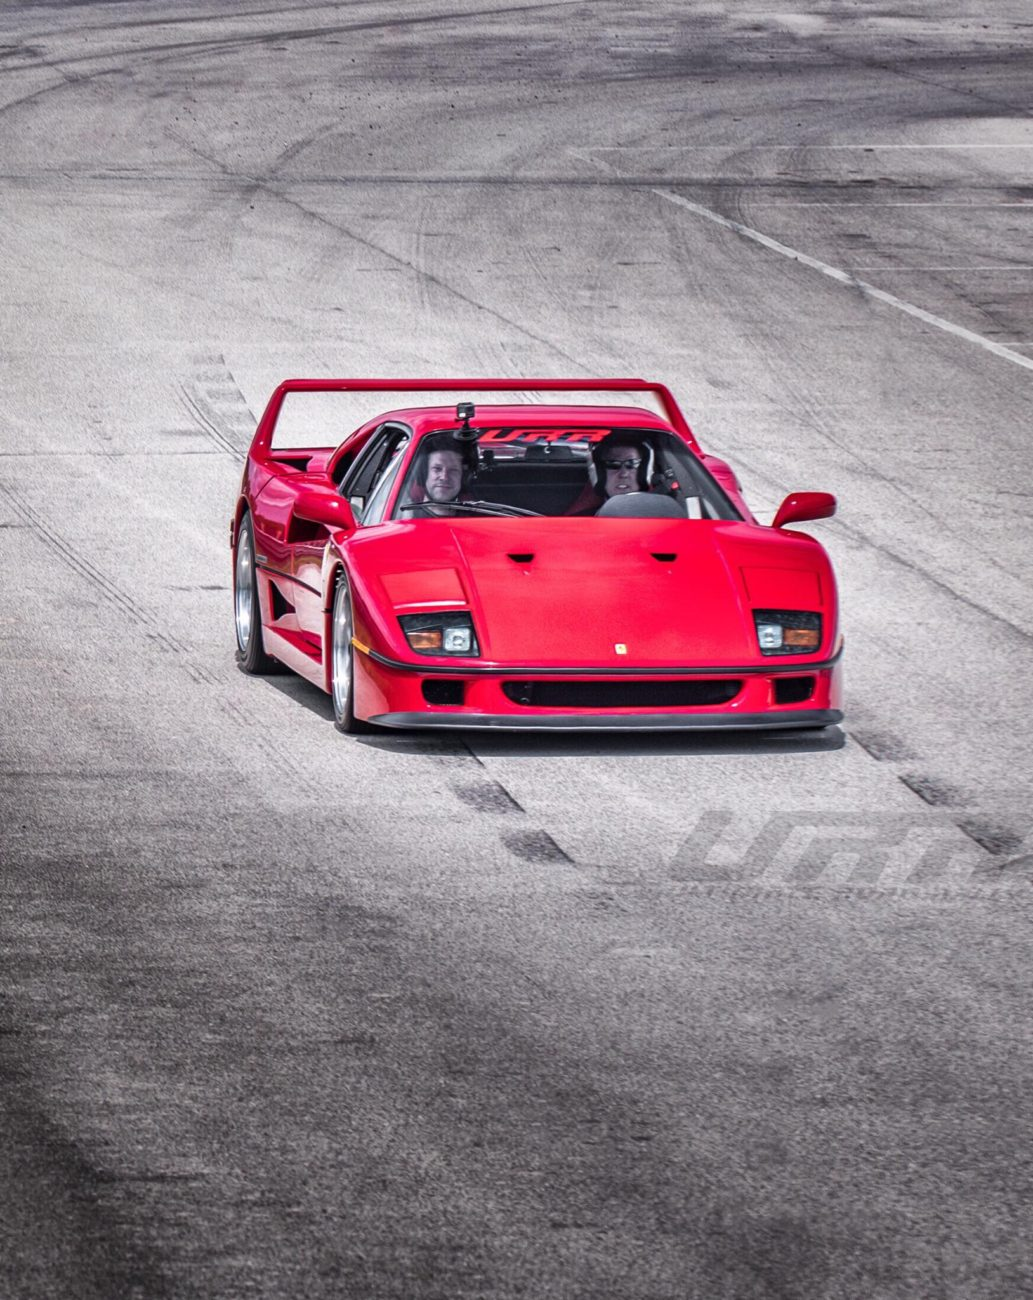 Arne's Antics Ferrari F40 Ultimate Road Rally Track Day CarBQ